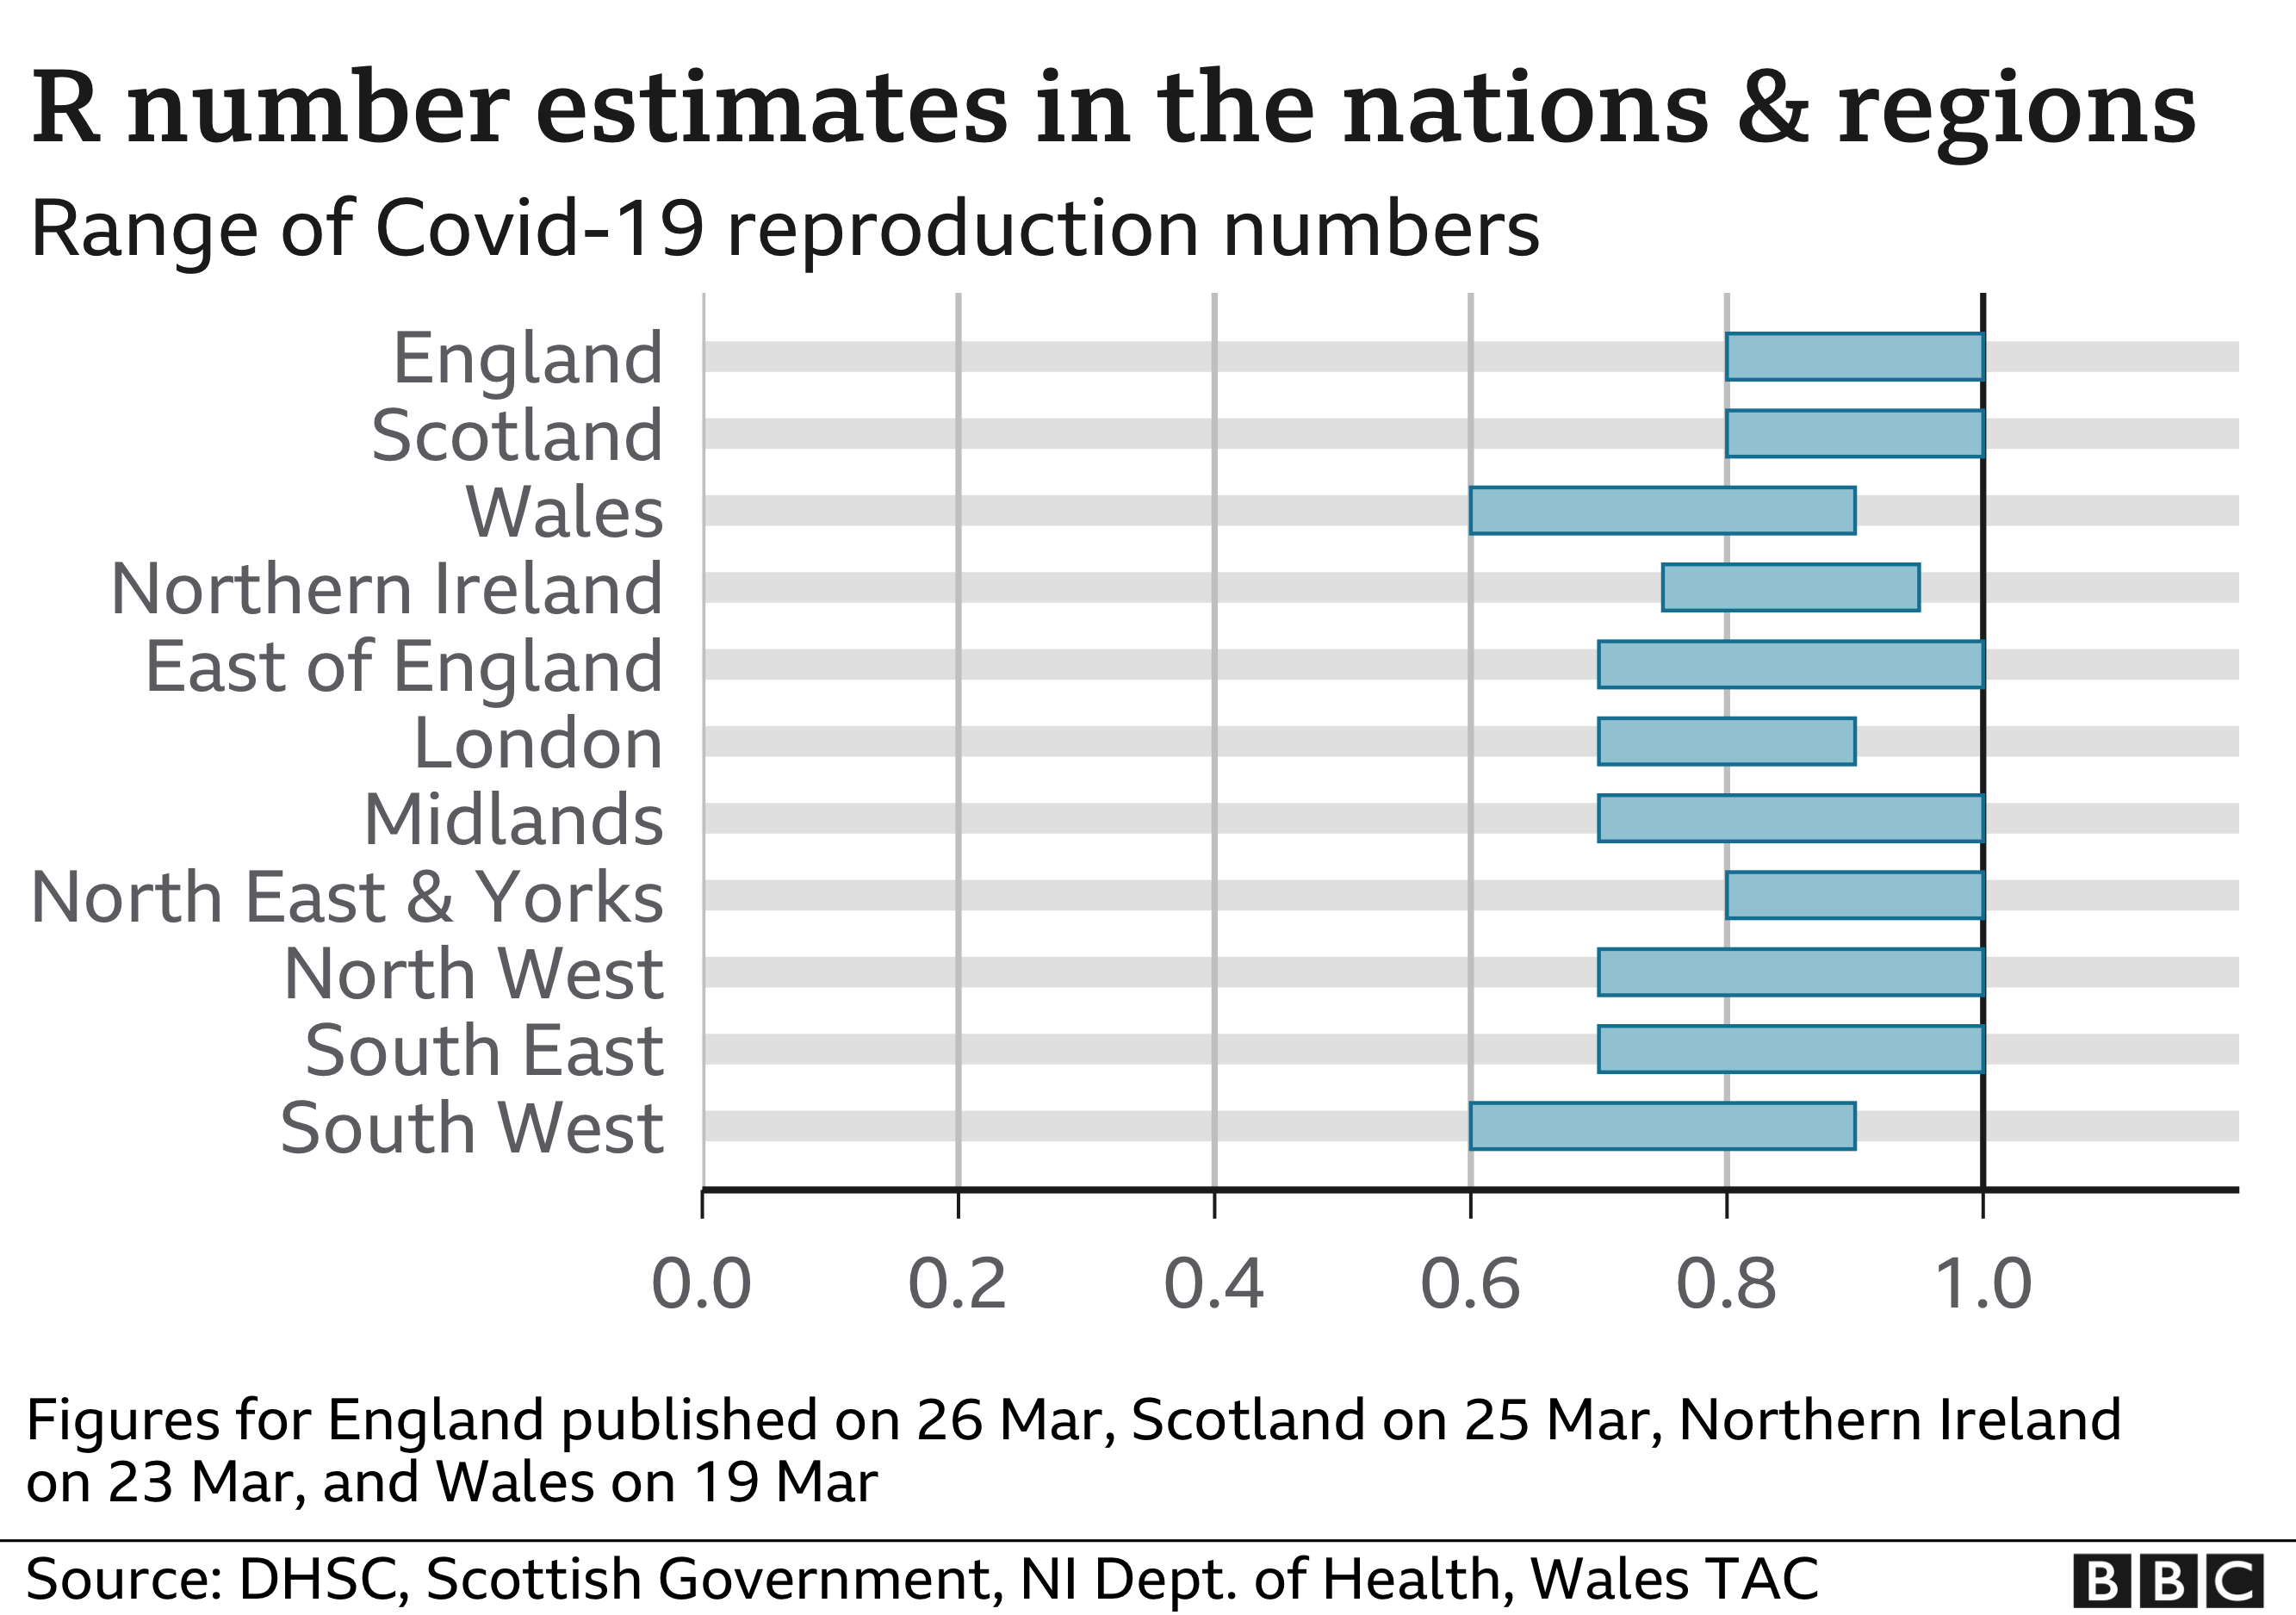 R number estimates in the nations and regions 26 March